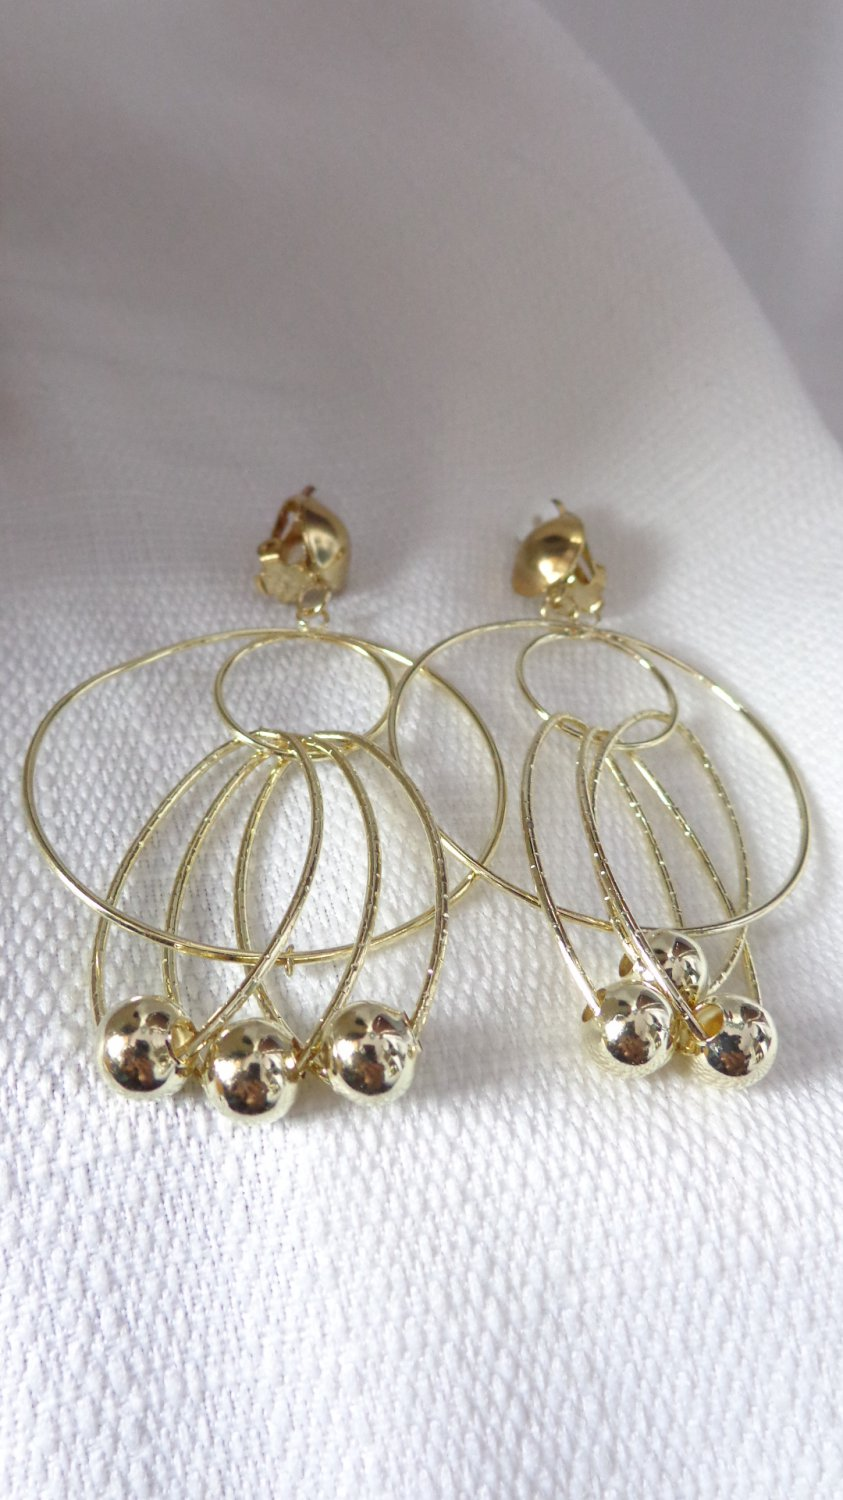 Clip-on Earrings Clip Earrings Gold Tone Bead Dangle